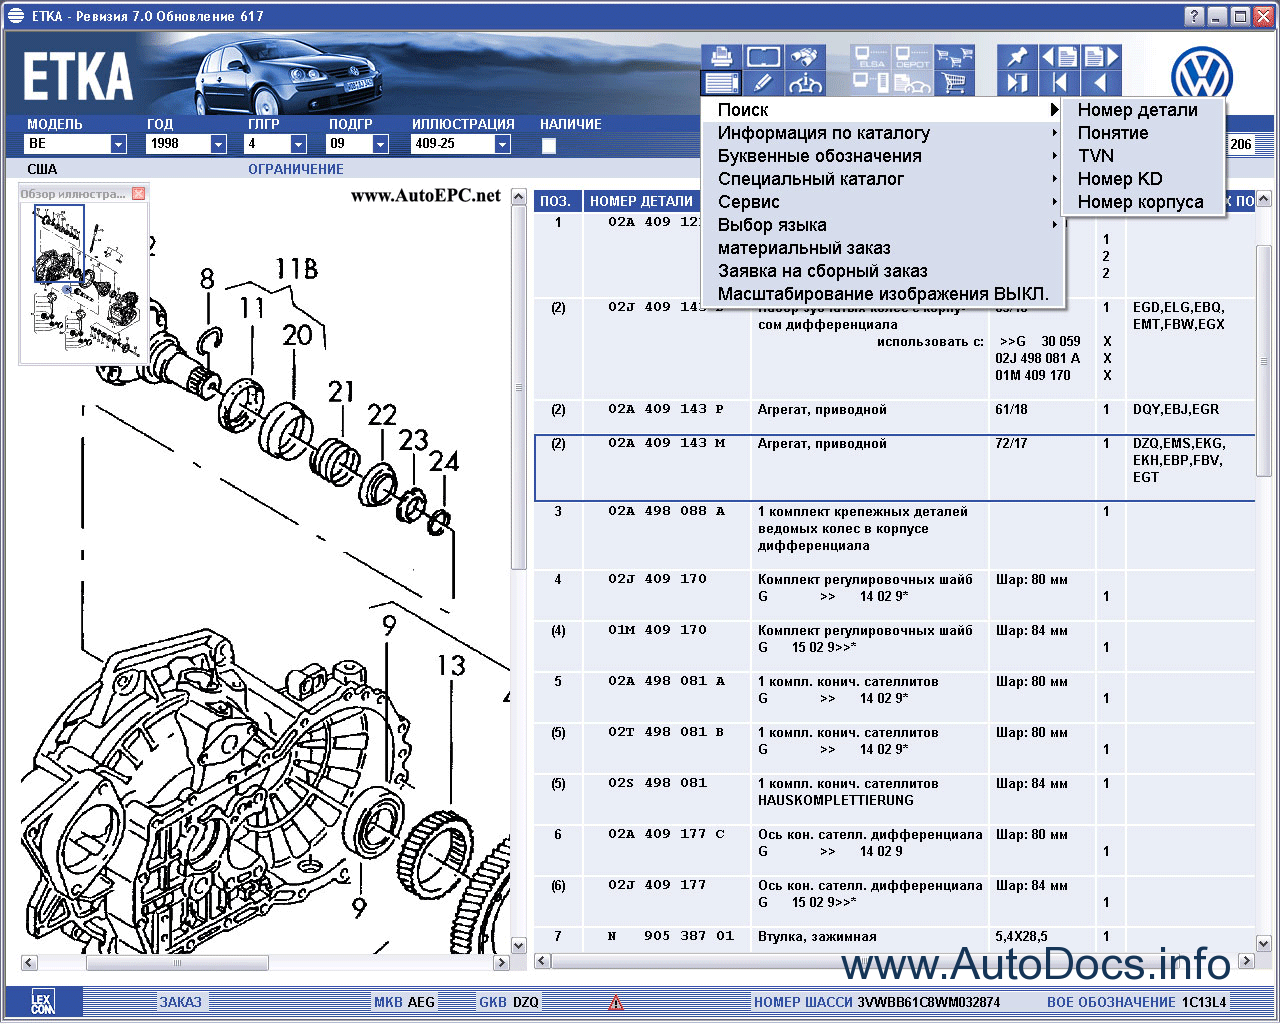 2006 audi a4 parts diagram etka  audi  auto parts catalog